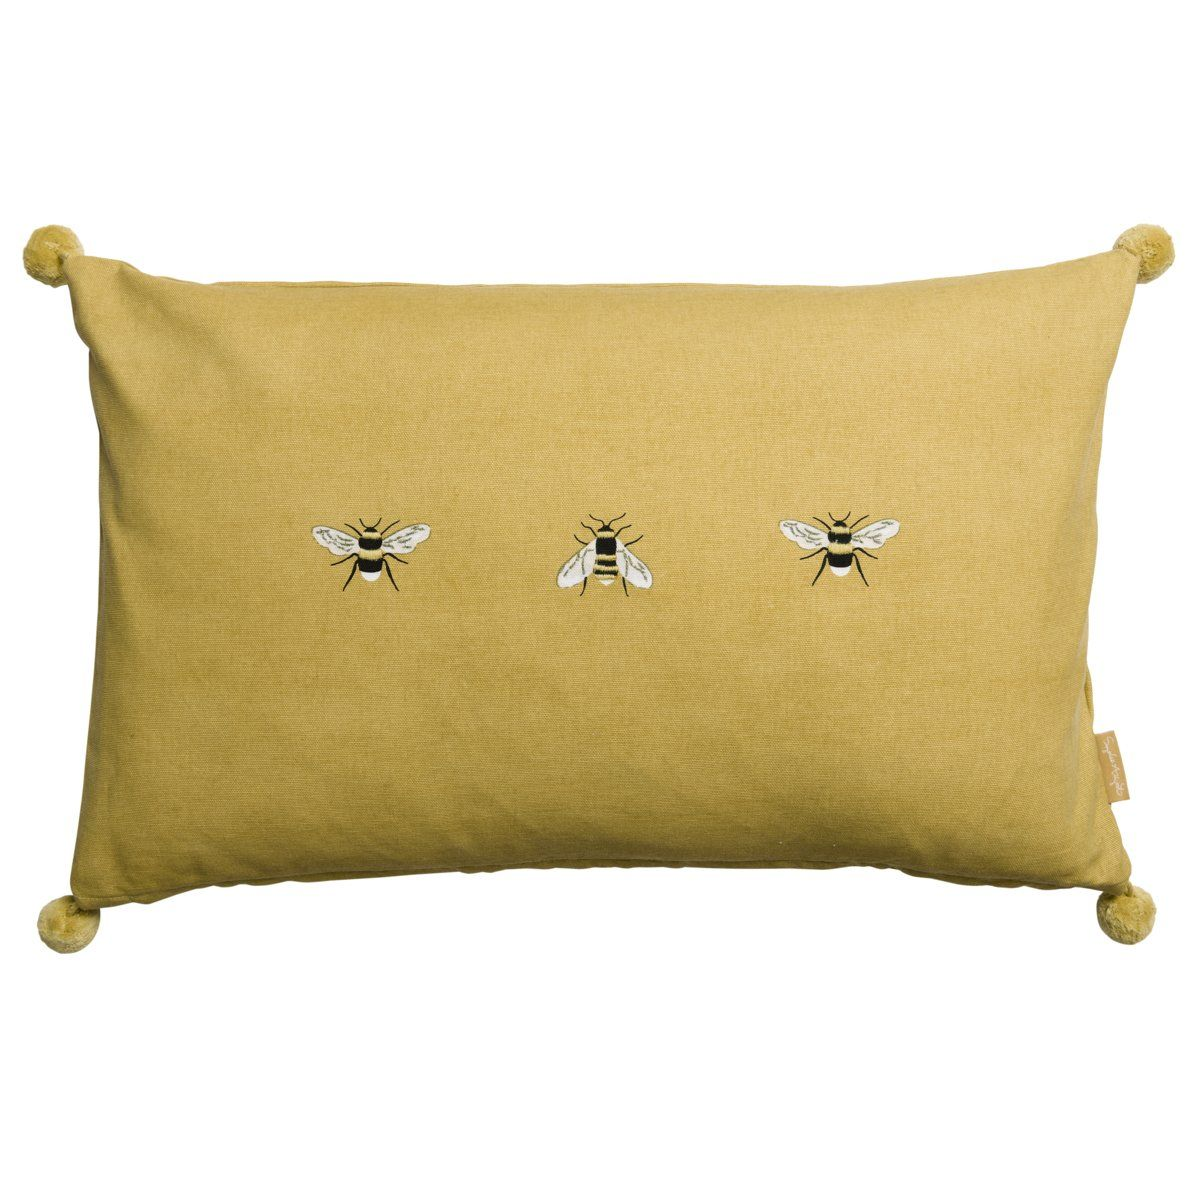 Bees embroidered cushion embroidered cushions cushions